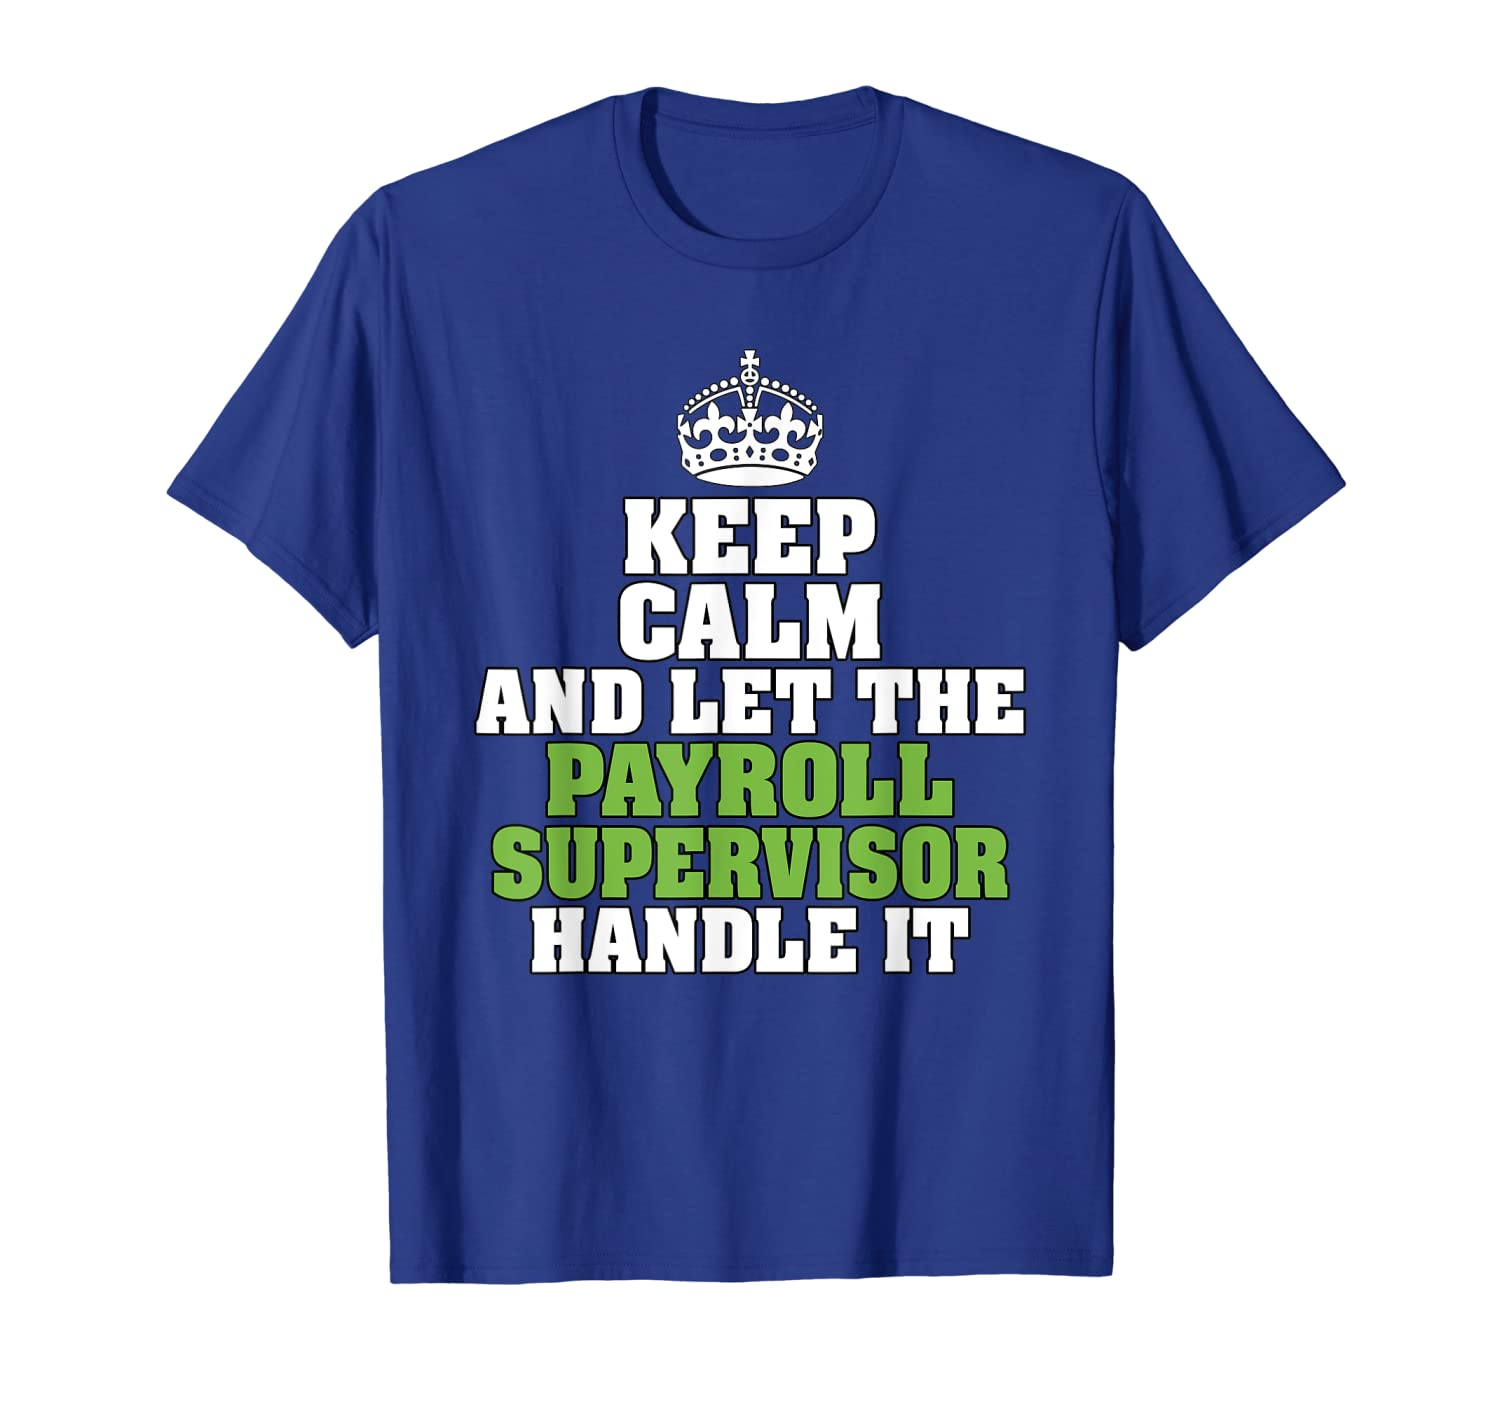 KEEP CALM AND LET THE PAYROLL SUPERVISOR HANDLE IT SHIRT T-Shirt